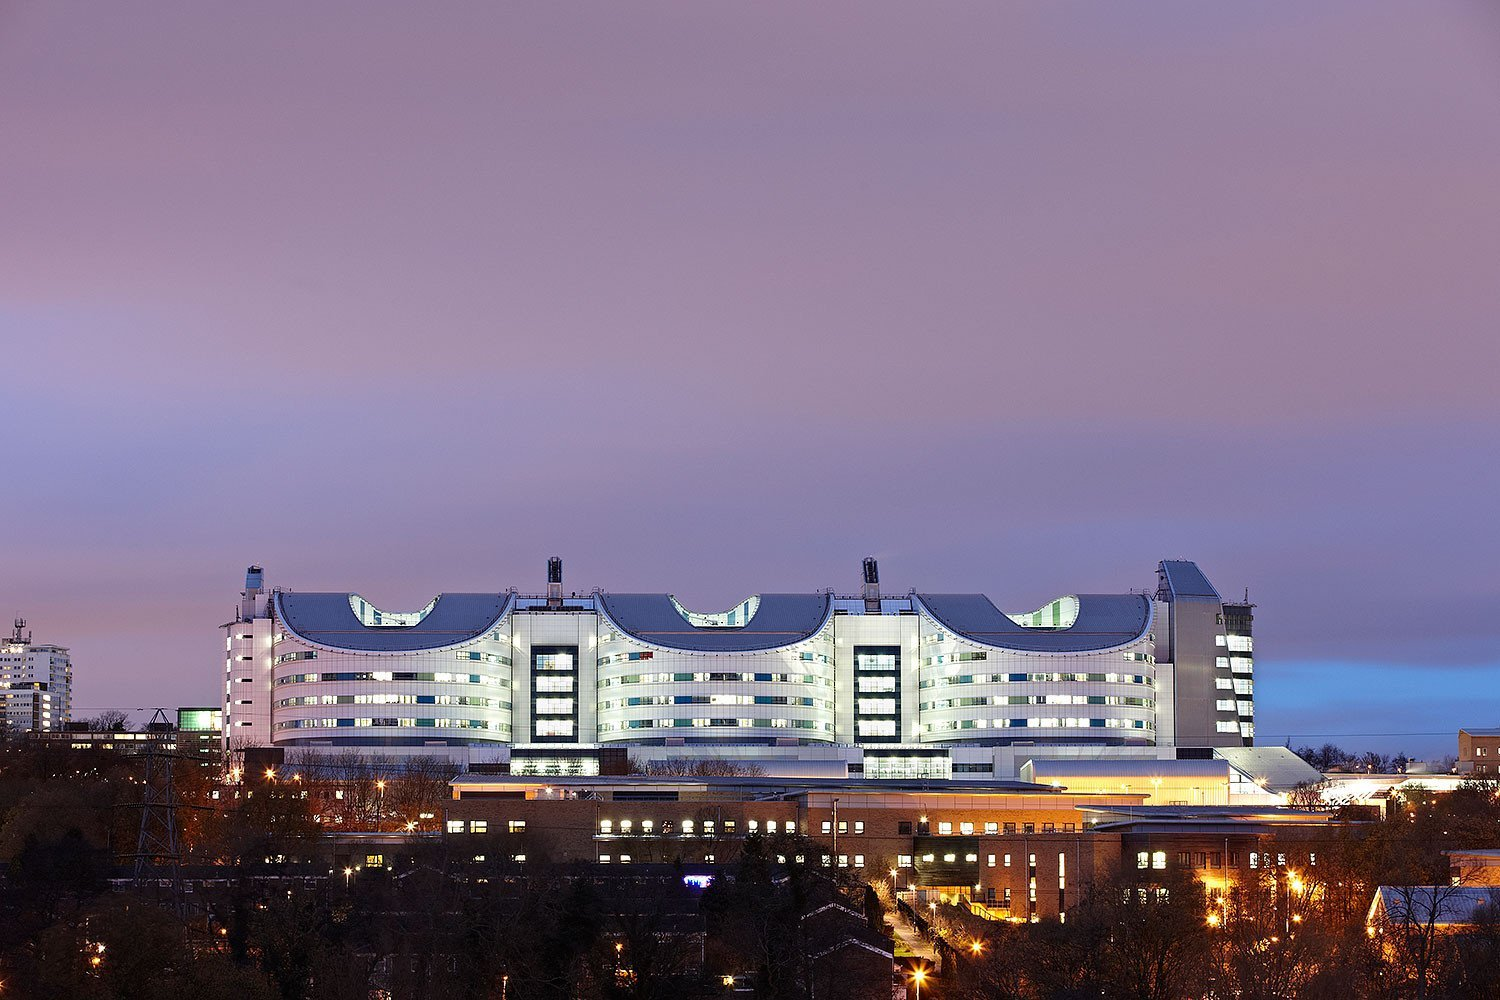 Exterior of the QE Hospital in Birmingham